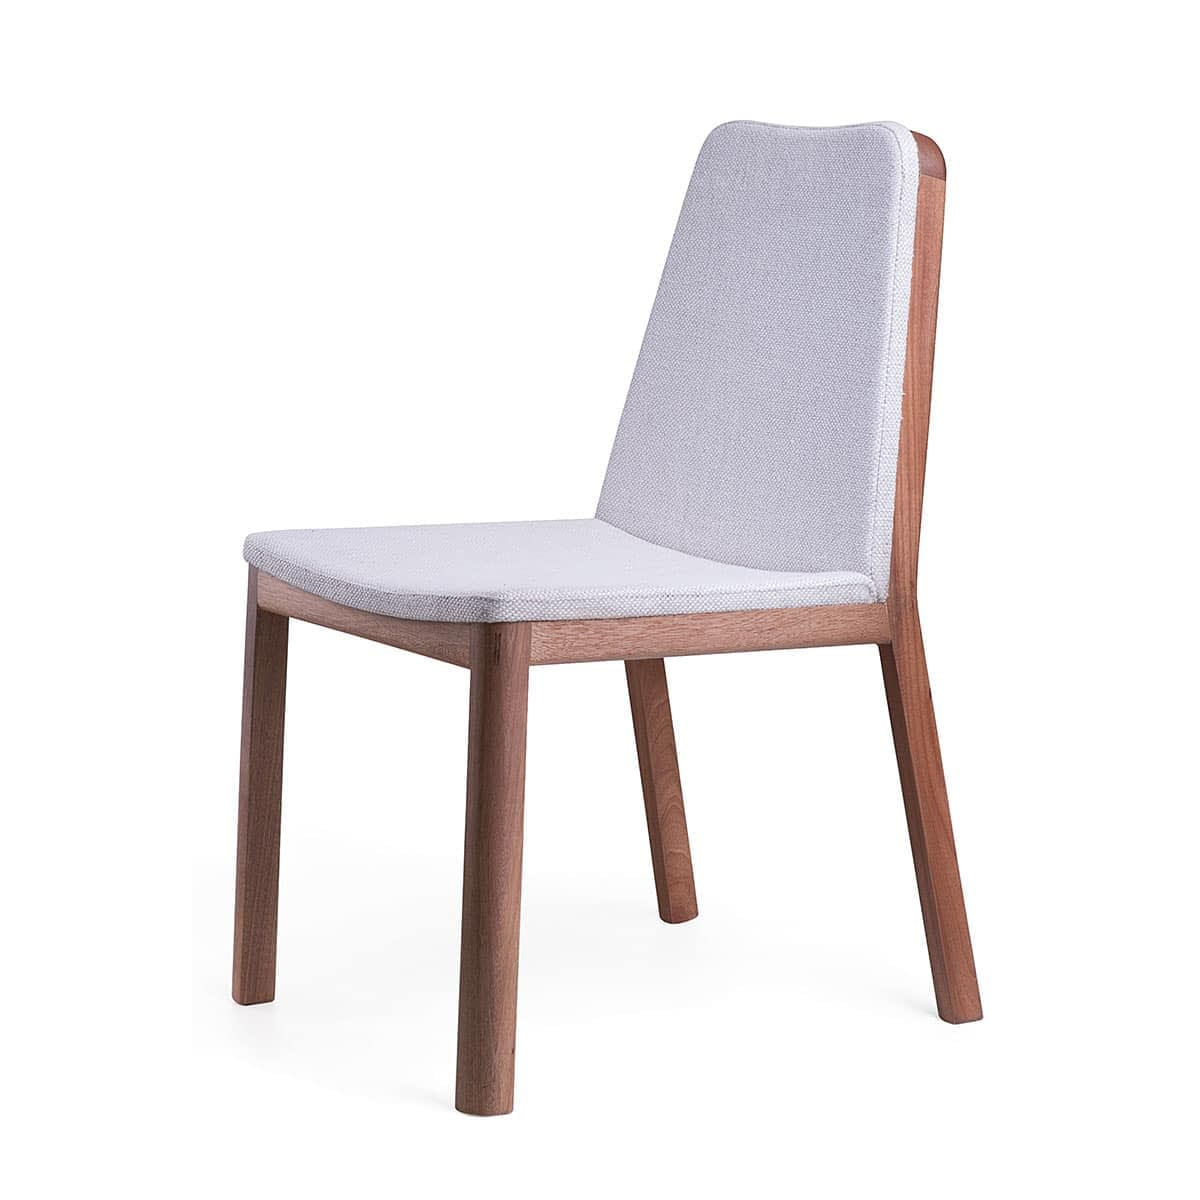 Designers Plataforma4 Design Sal Chair